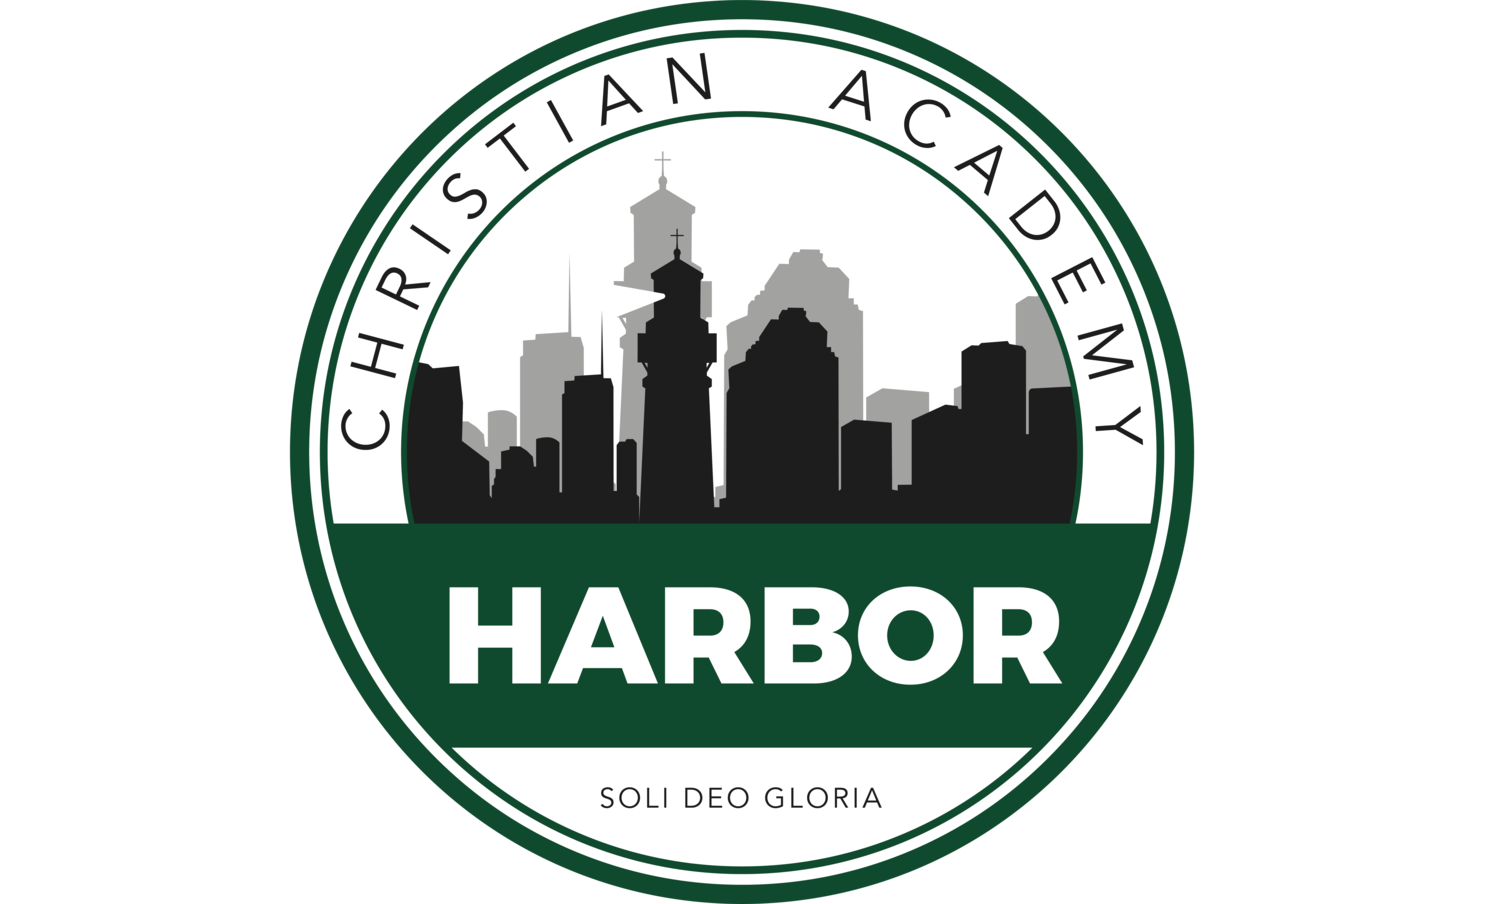 HARBOR CHRISTIAN ACADEMY